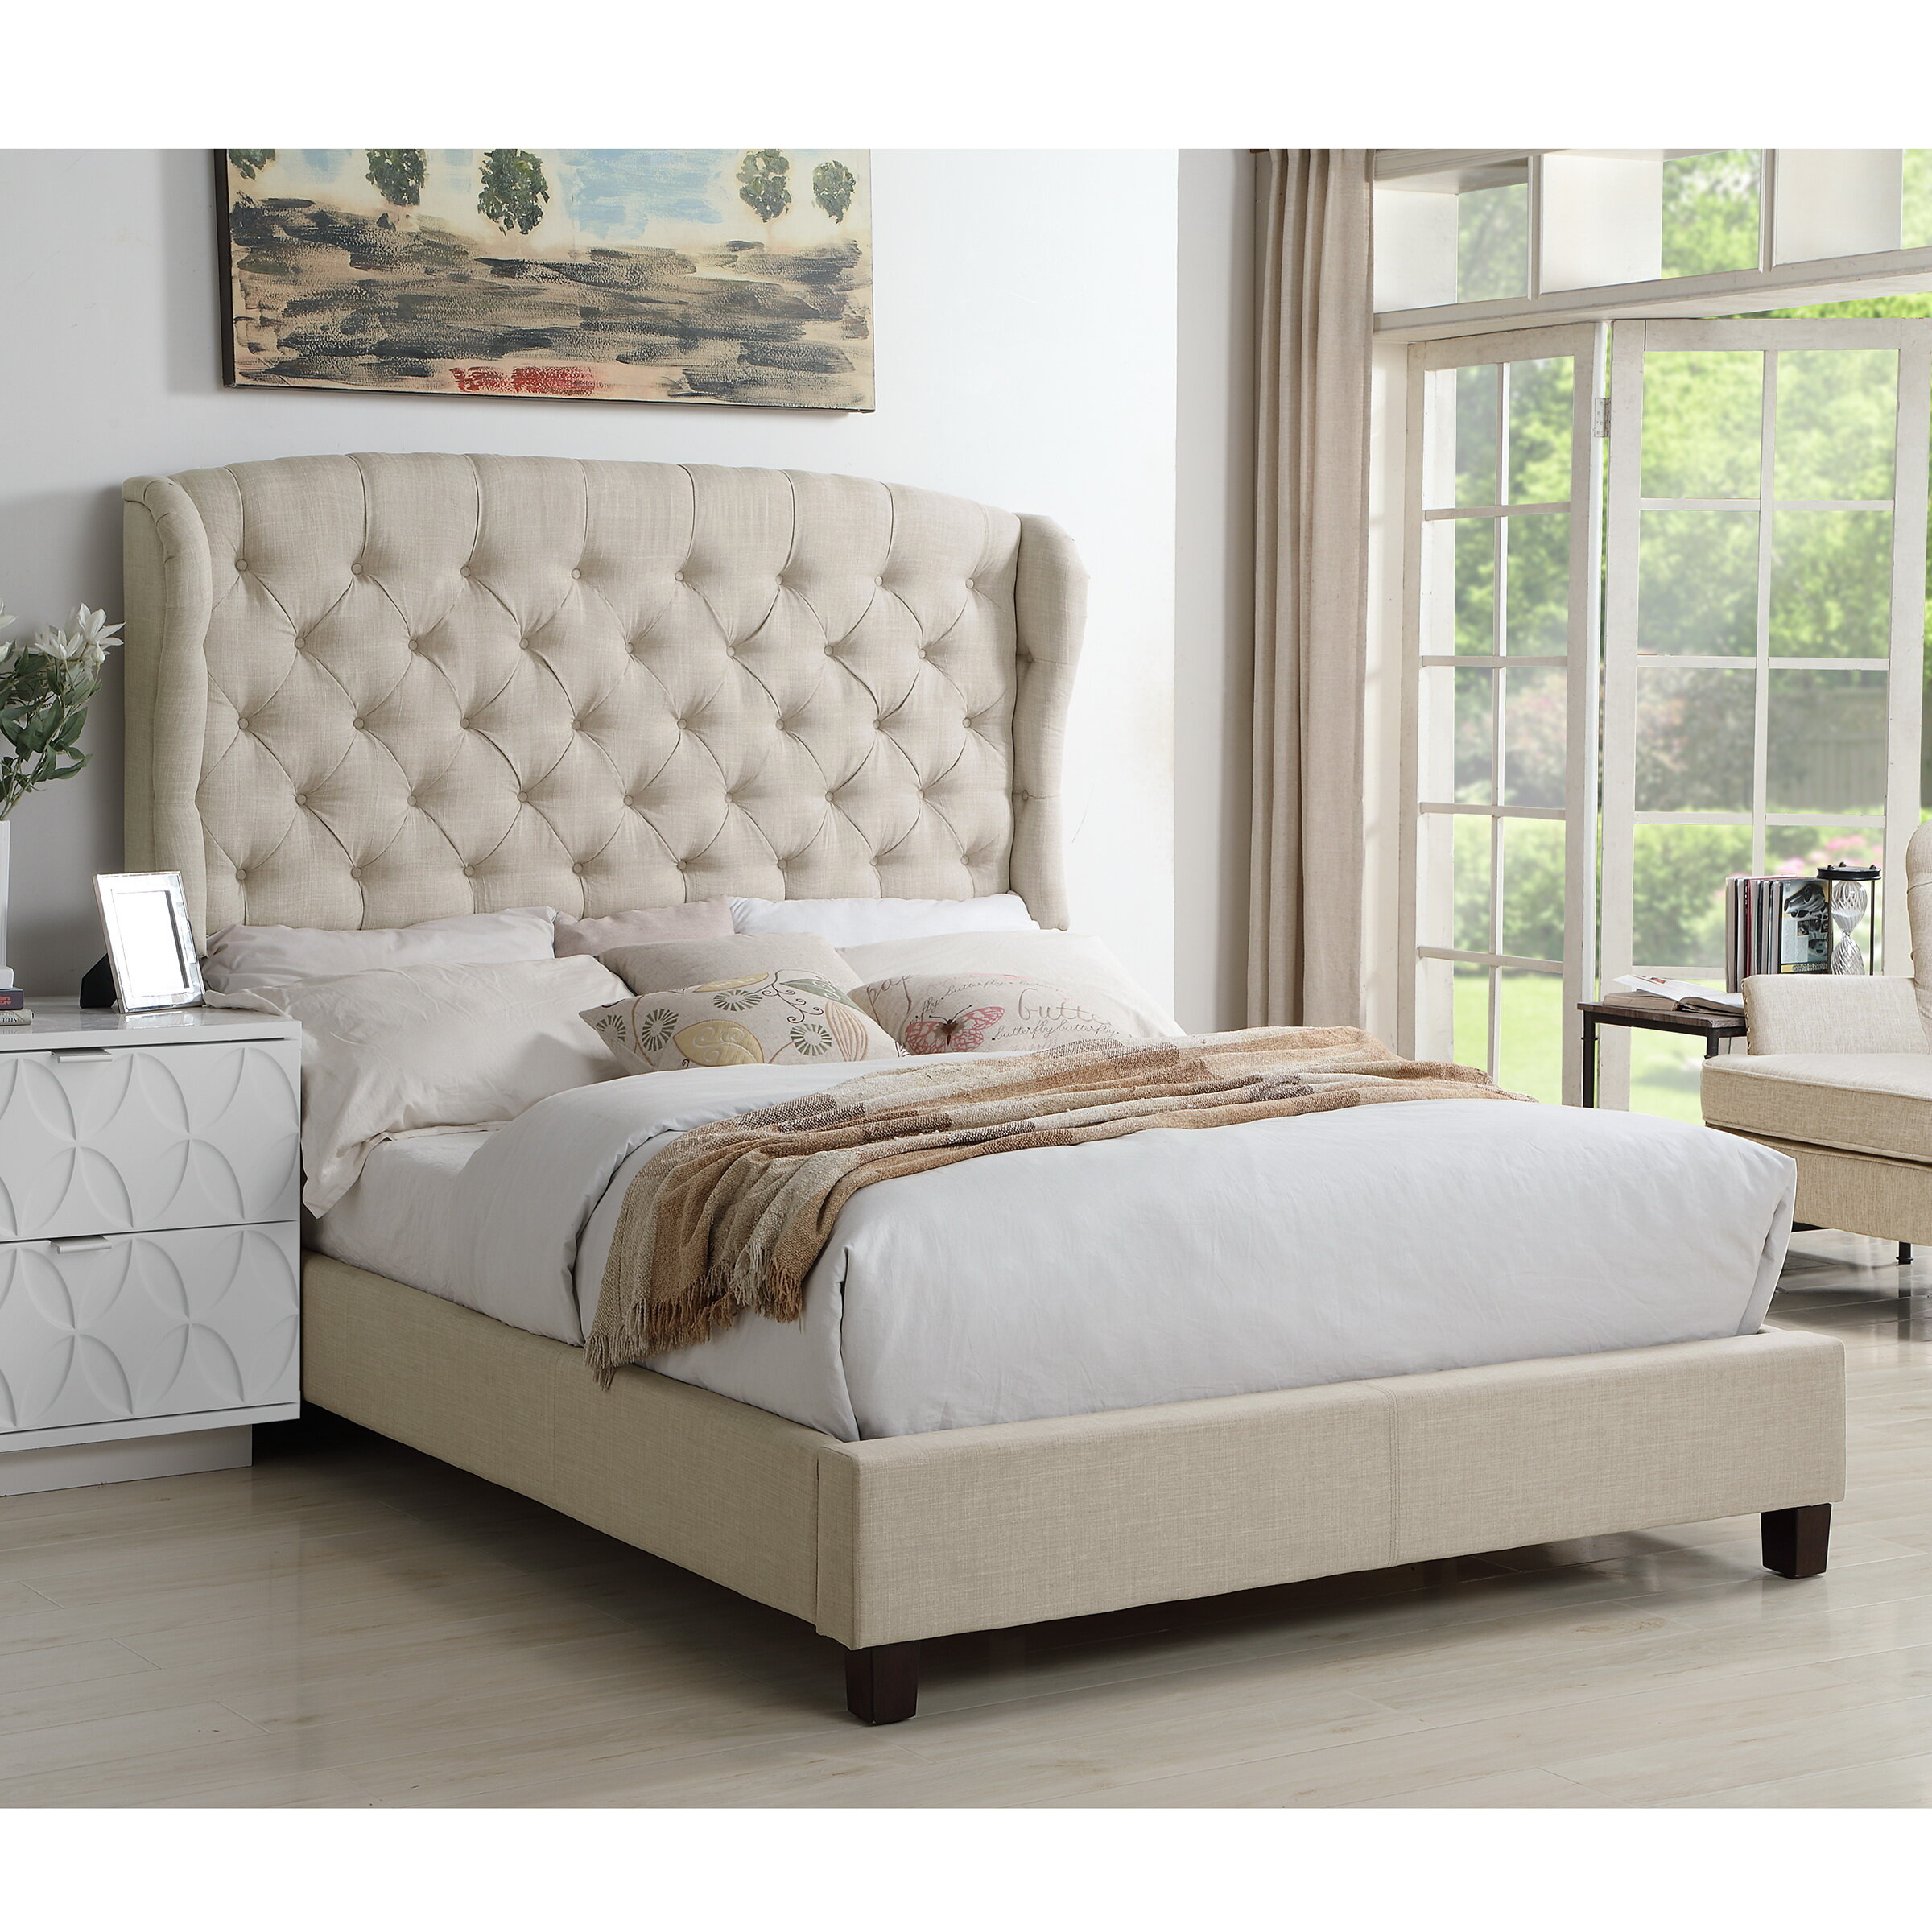 White Upholstered Beds You Ll Love In 2020 Wayfair